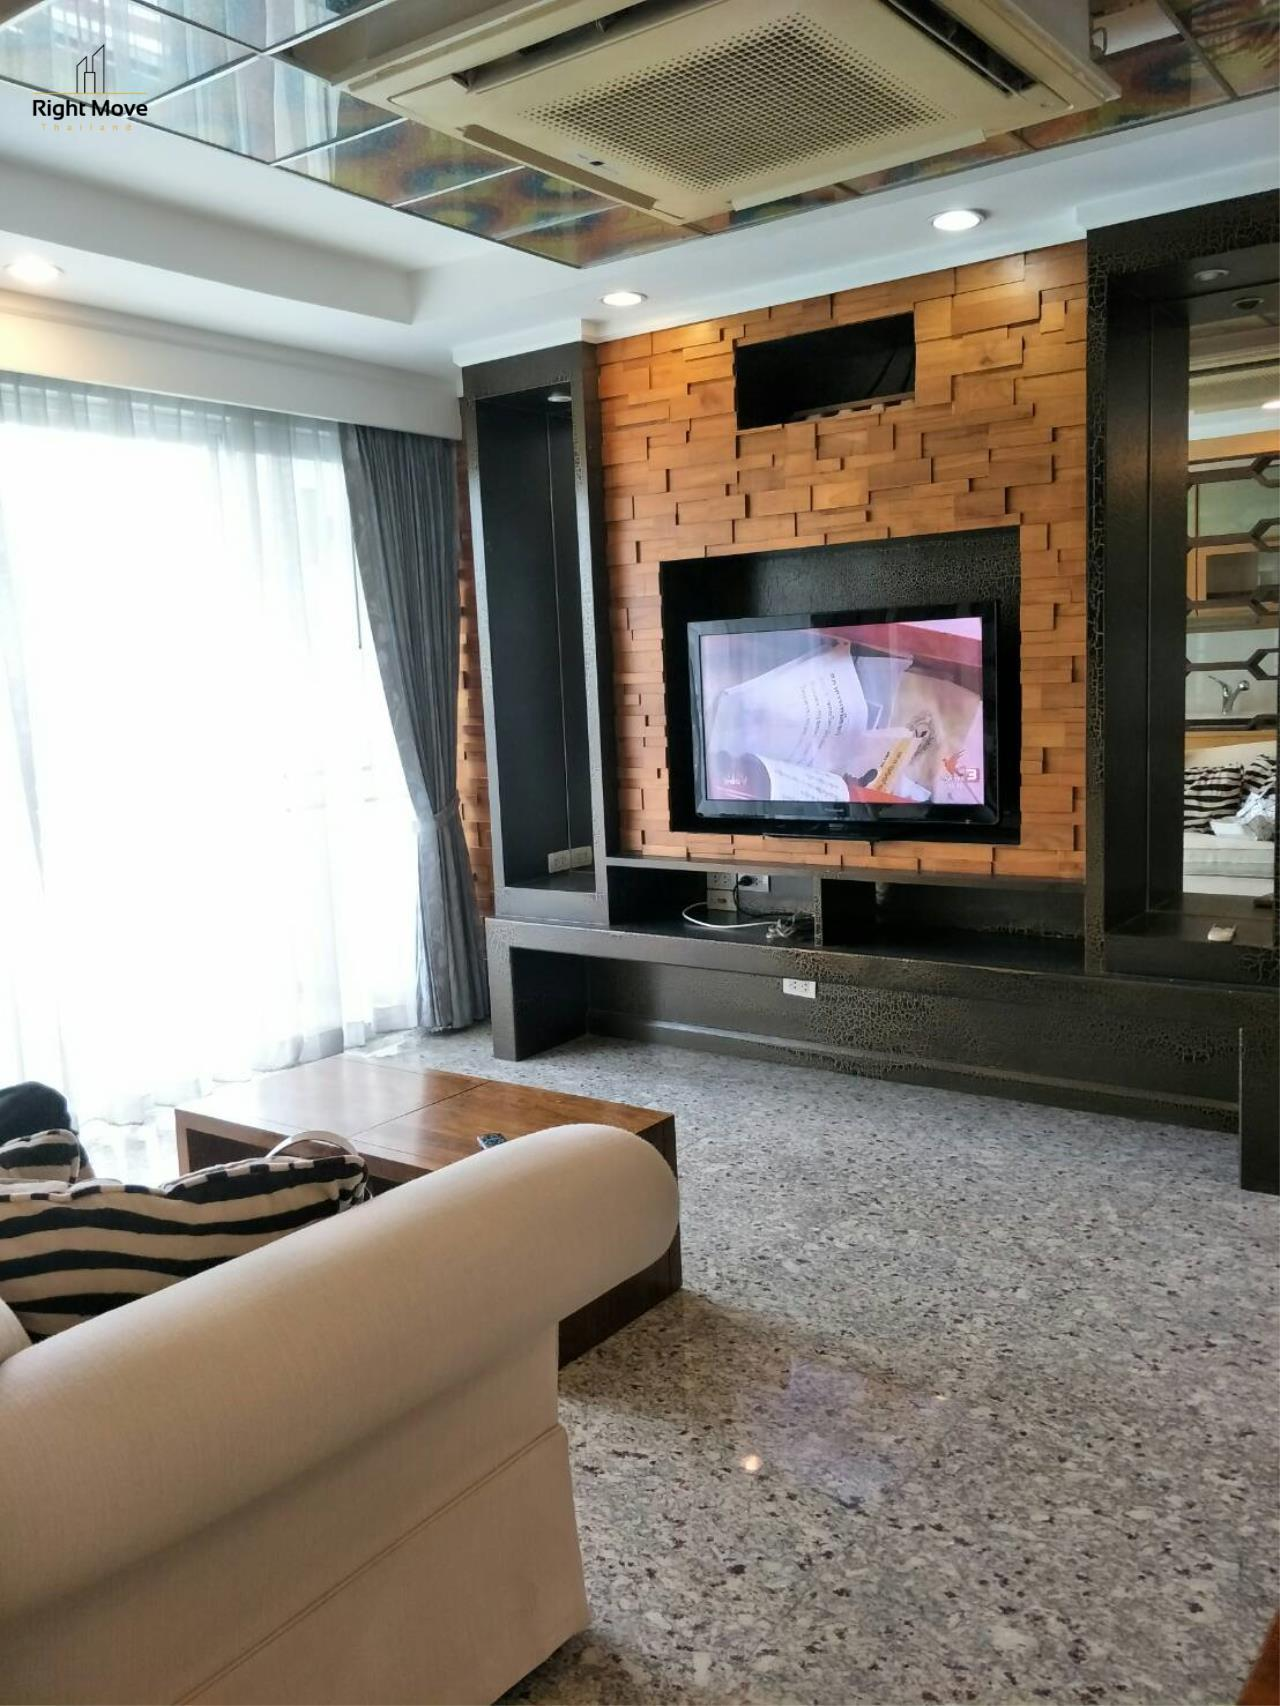 Right Move Thailand Agency's CS2431 Avenue 61 For Sale 14,300,000 THB 2 Bedrooms 102 Sqm 5